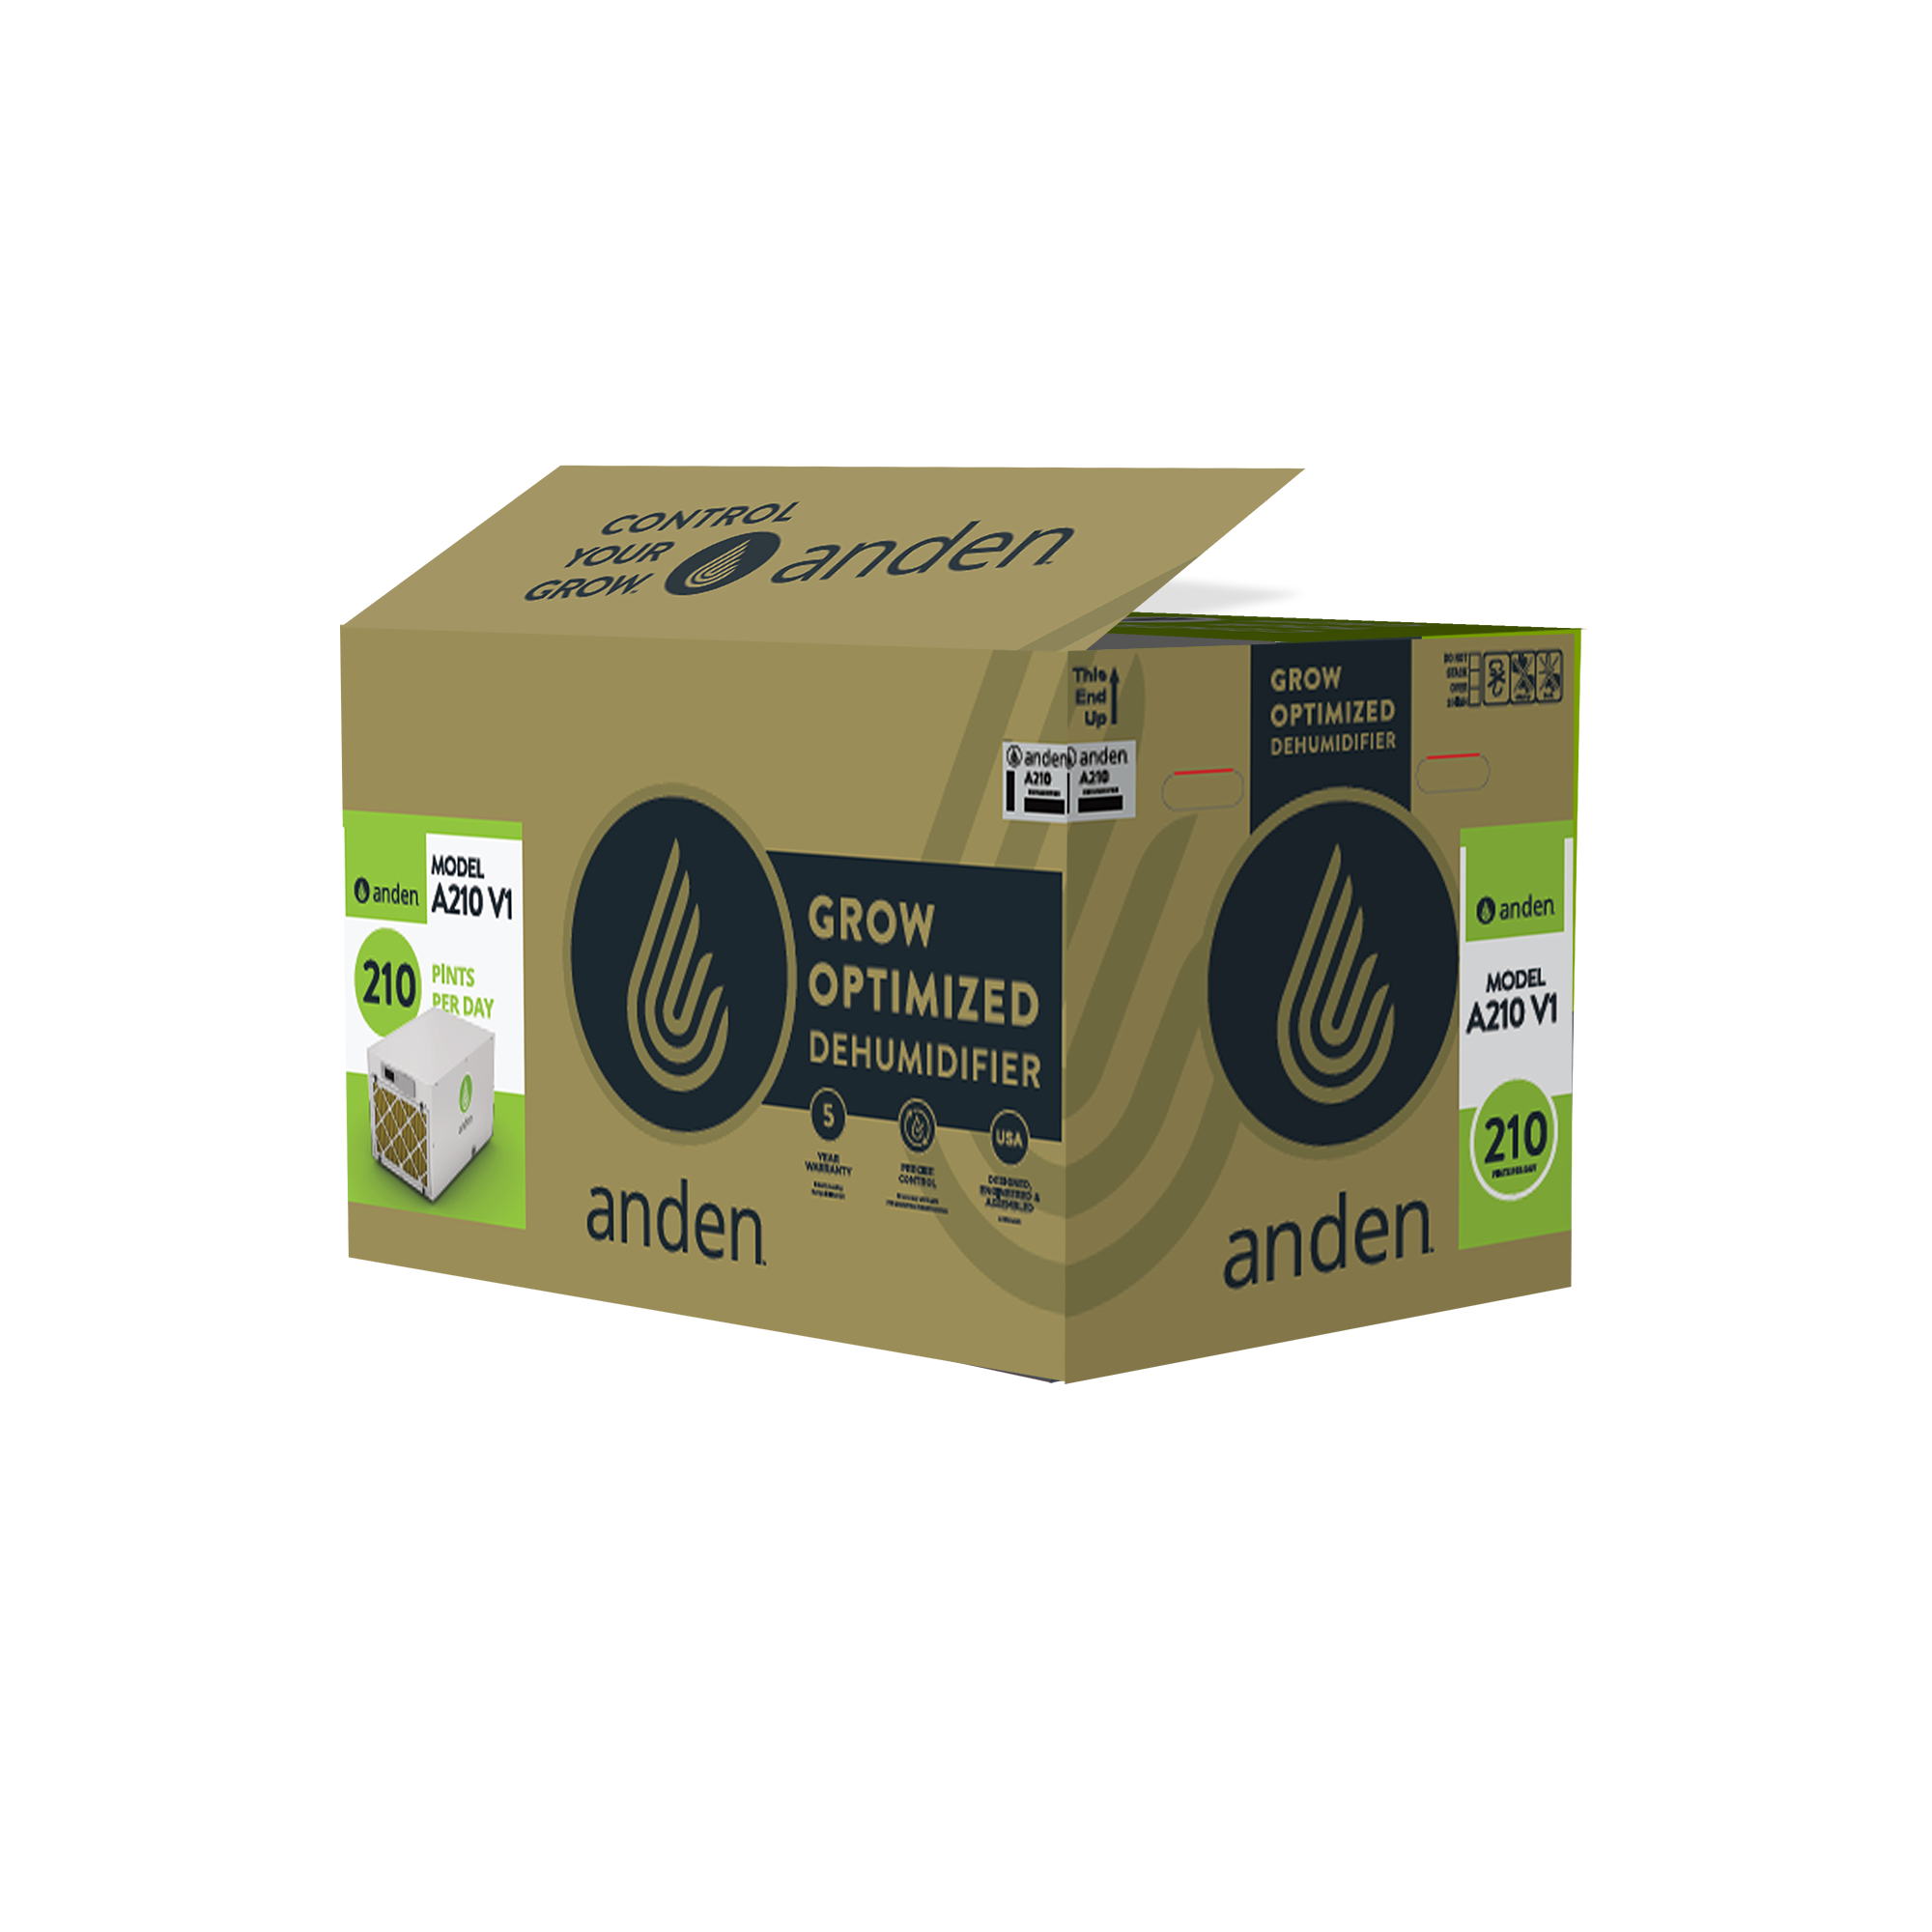 Anden-Model-A210-Grow Room-Dehumidifier